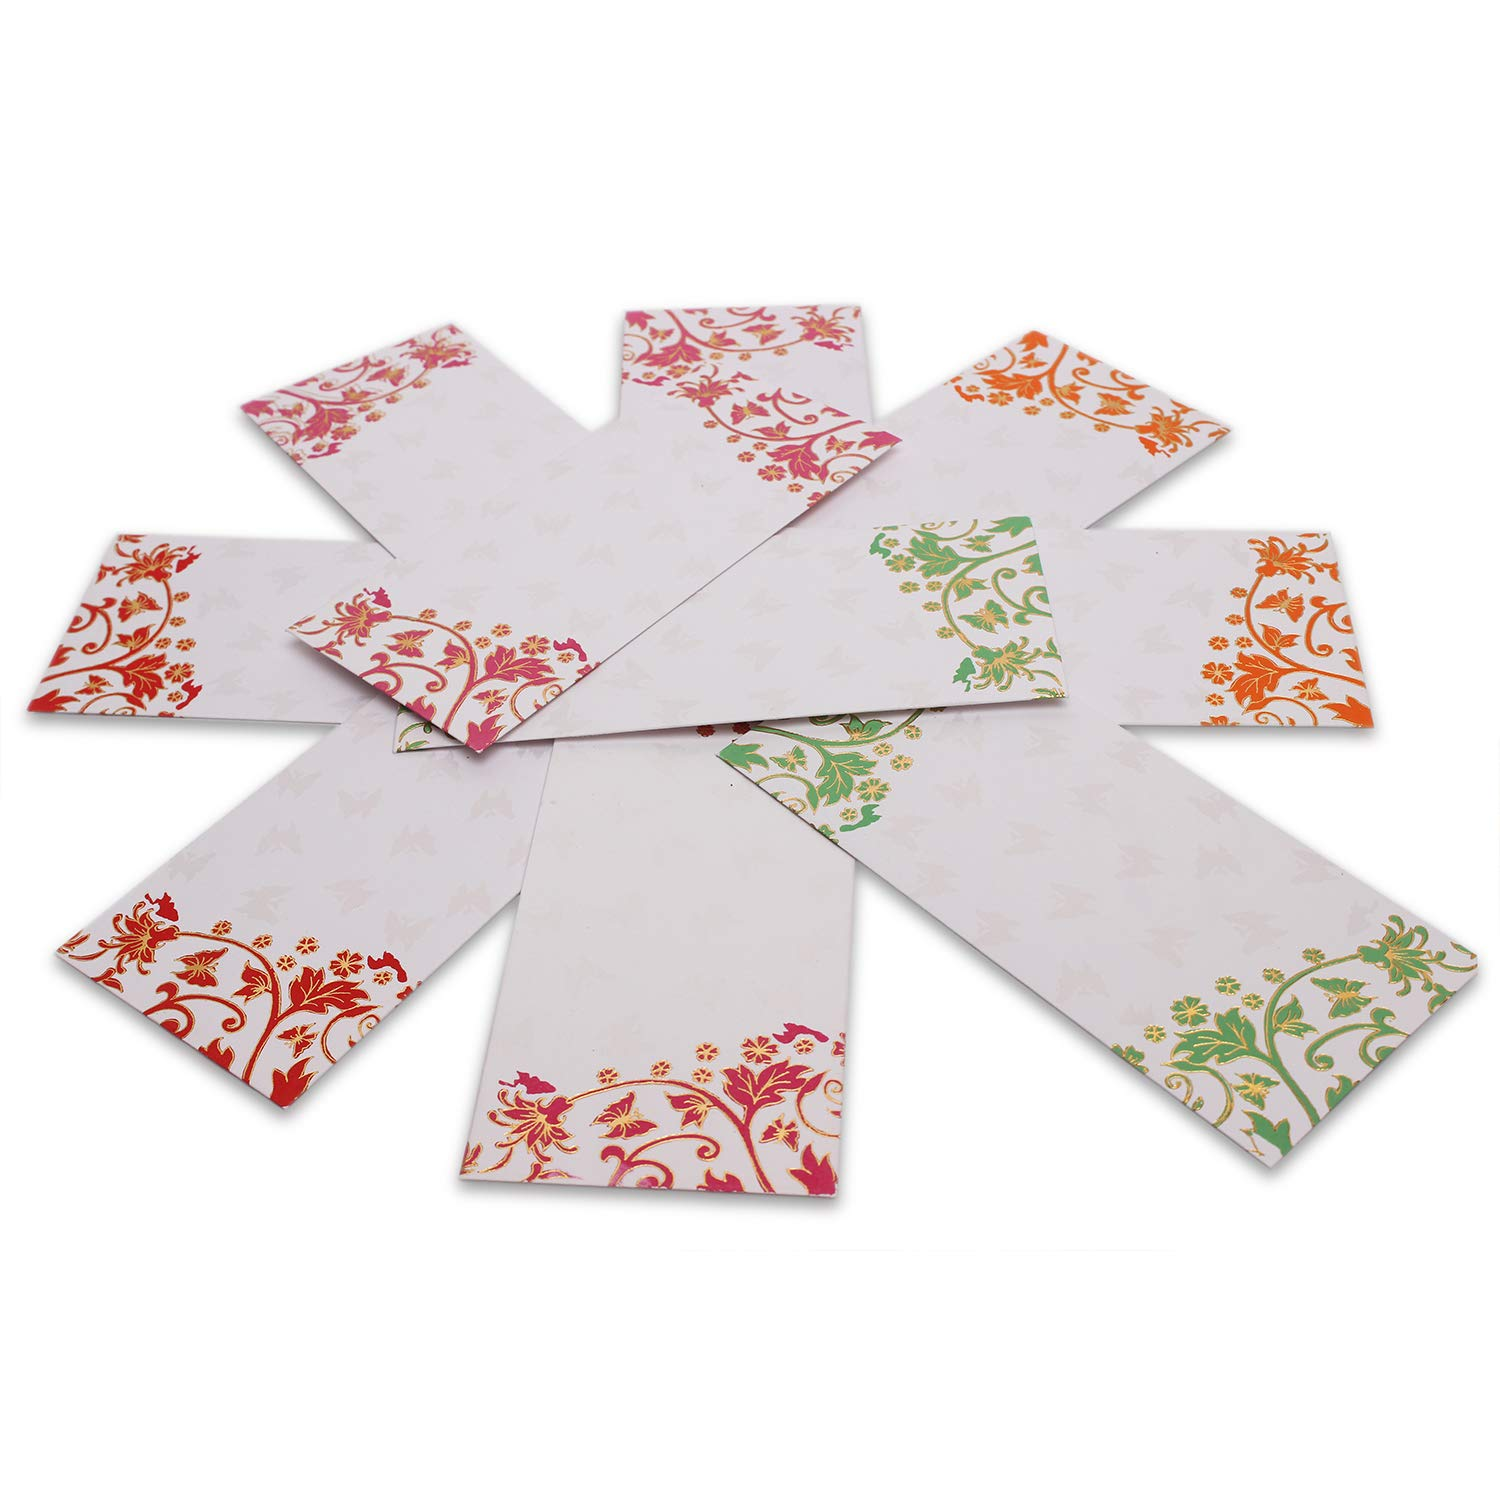 "PARTH IMPEX Premium Shagun Gift Envelope for Cash Pack of 50 7.5/"" x 3.5/"""